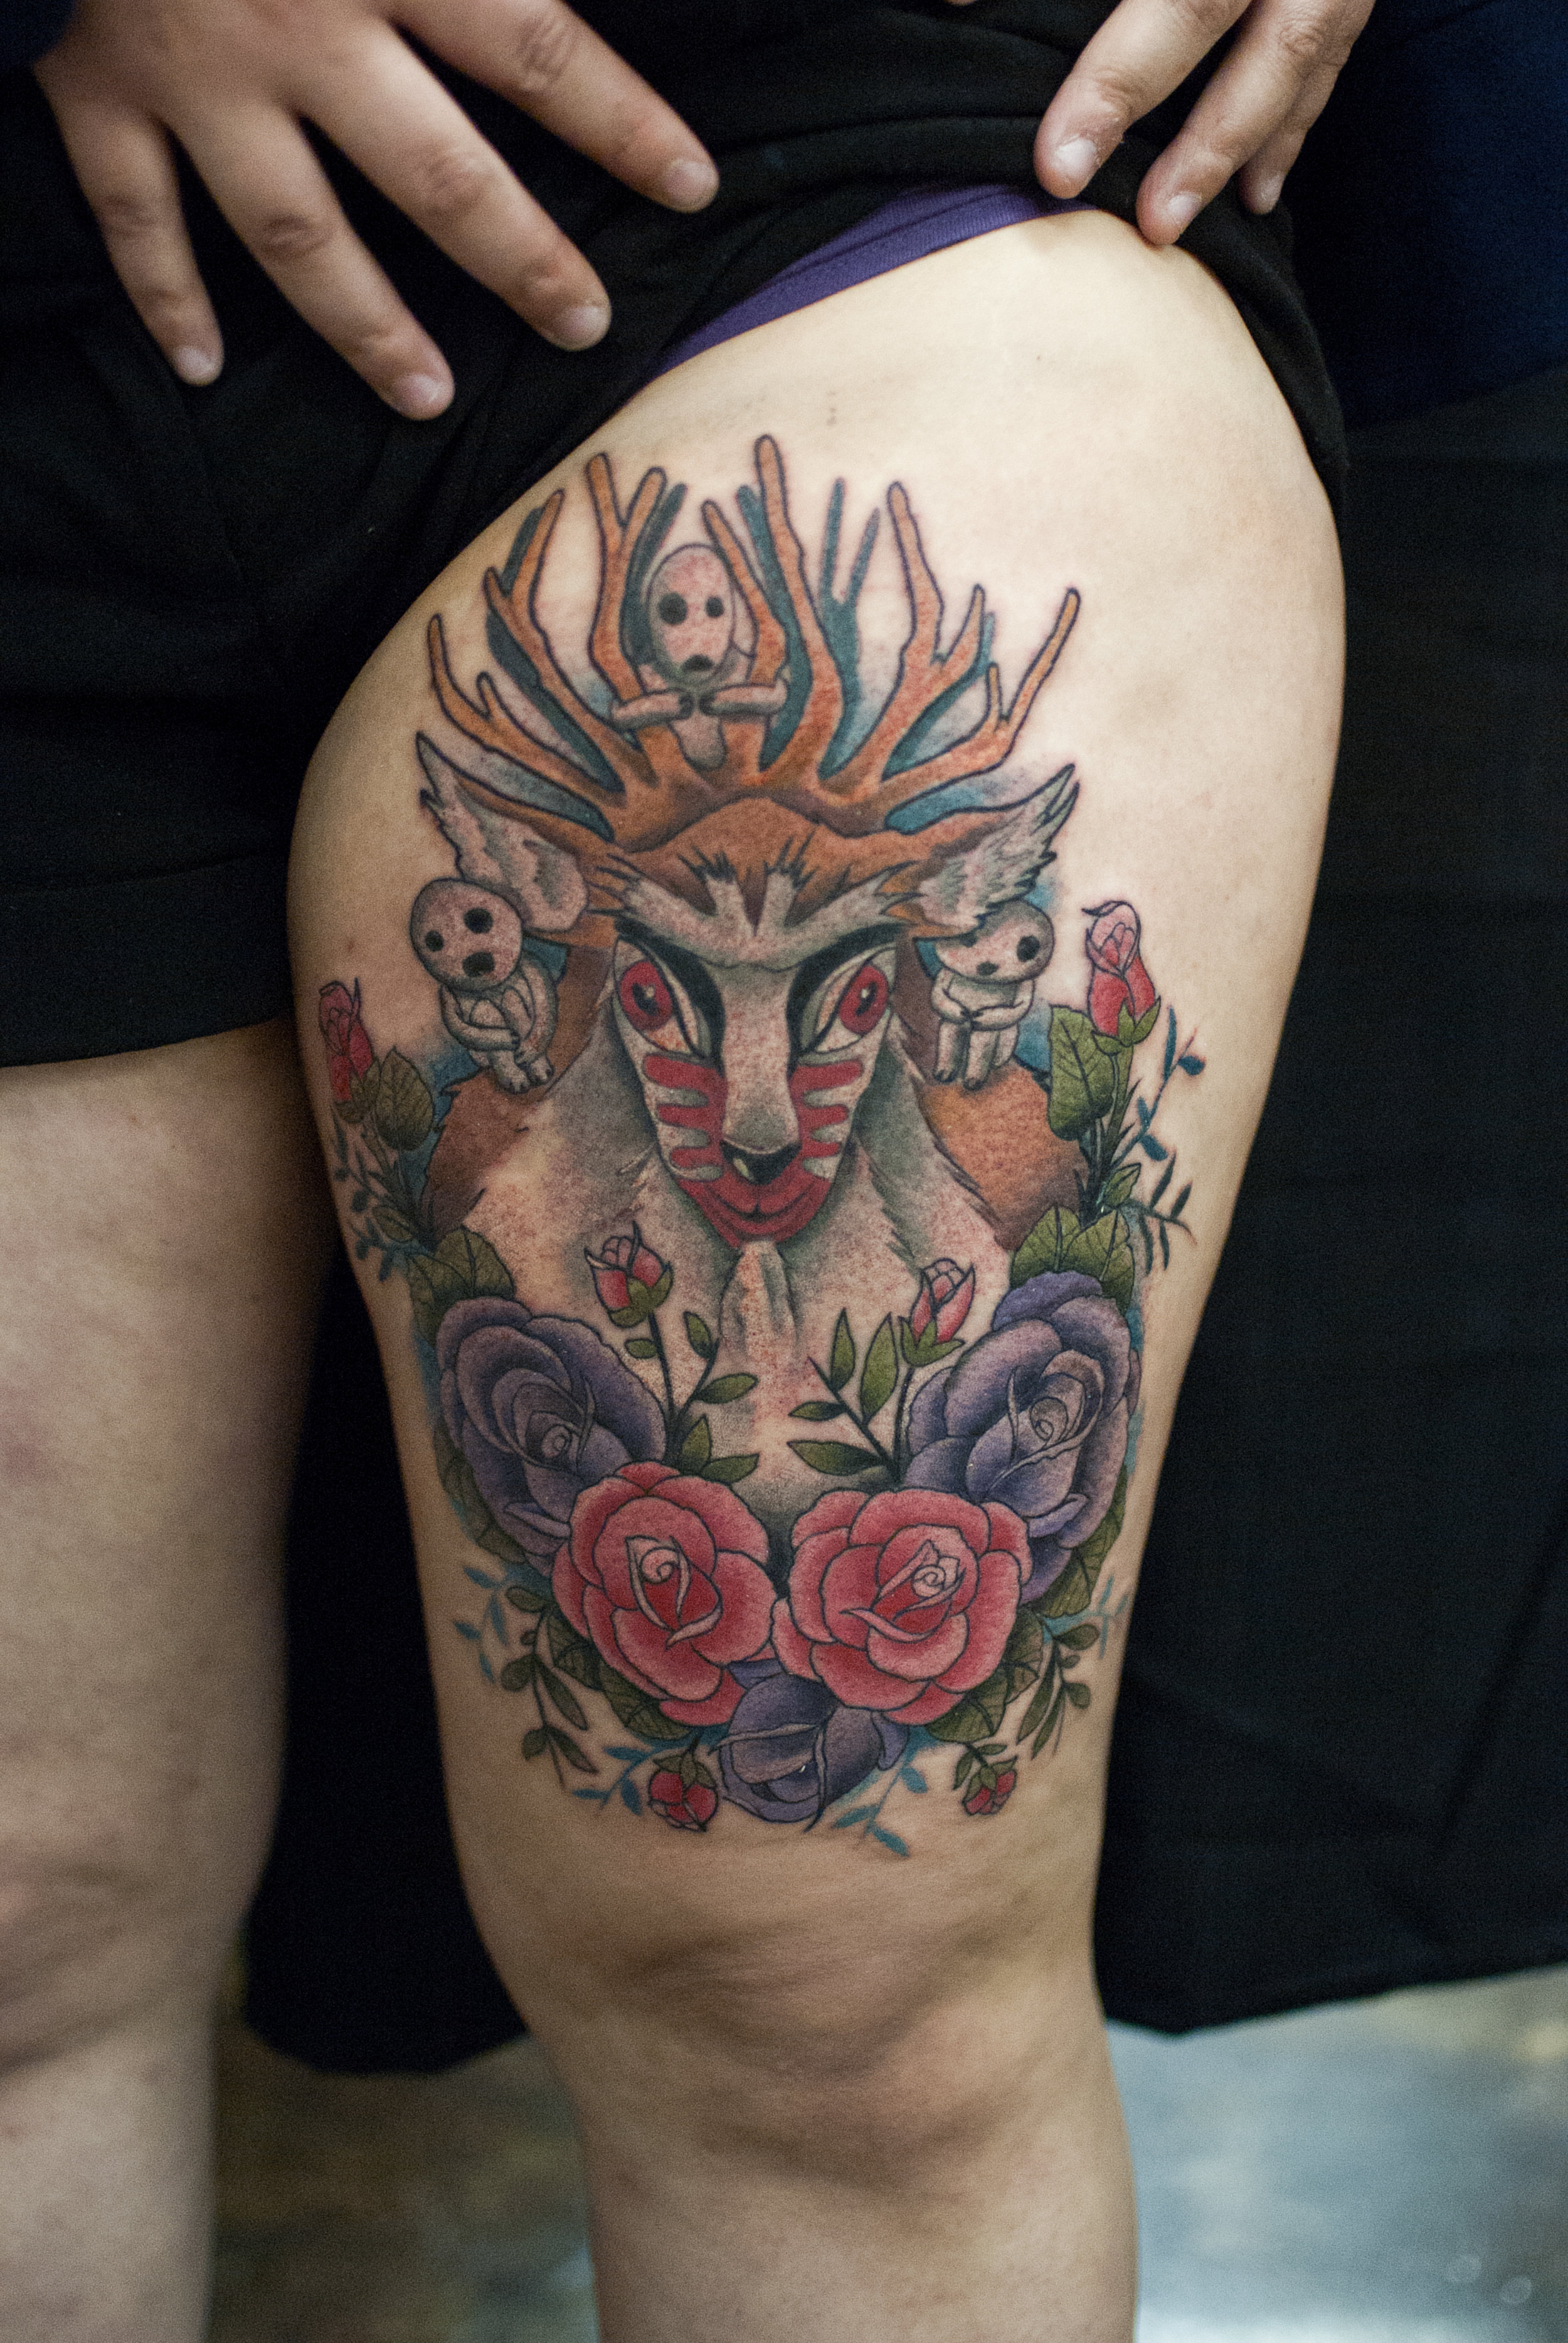 Atlanta Tattoo Artist James Cooper